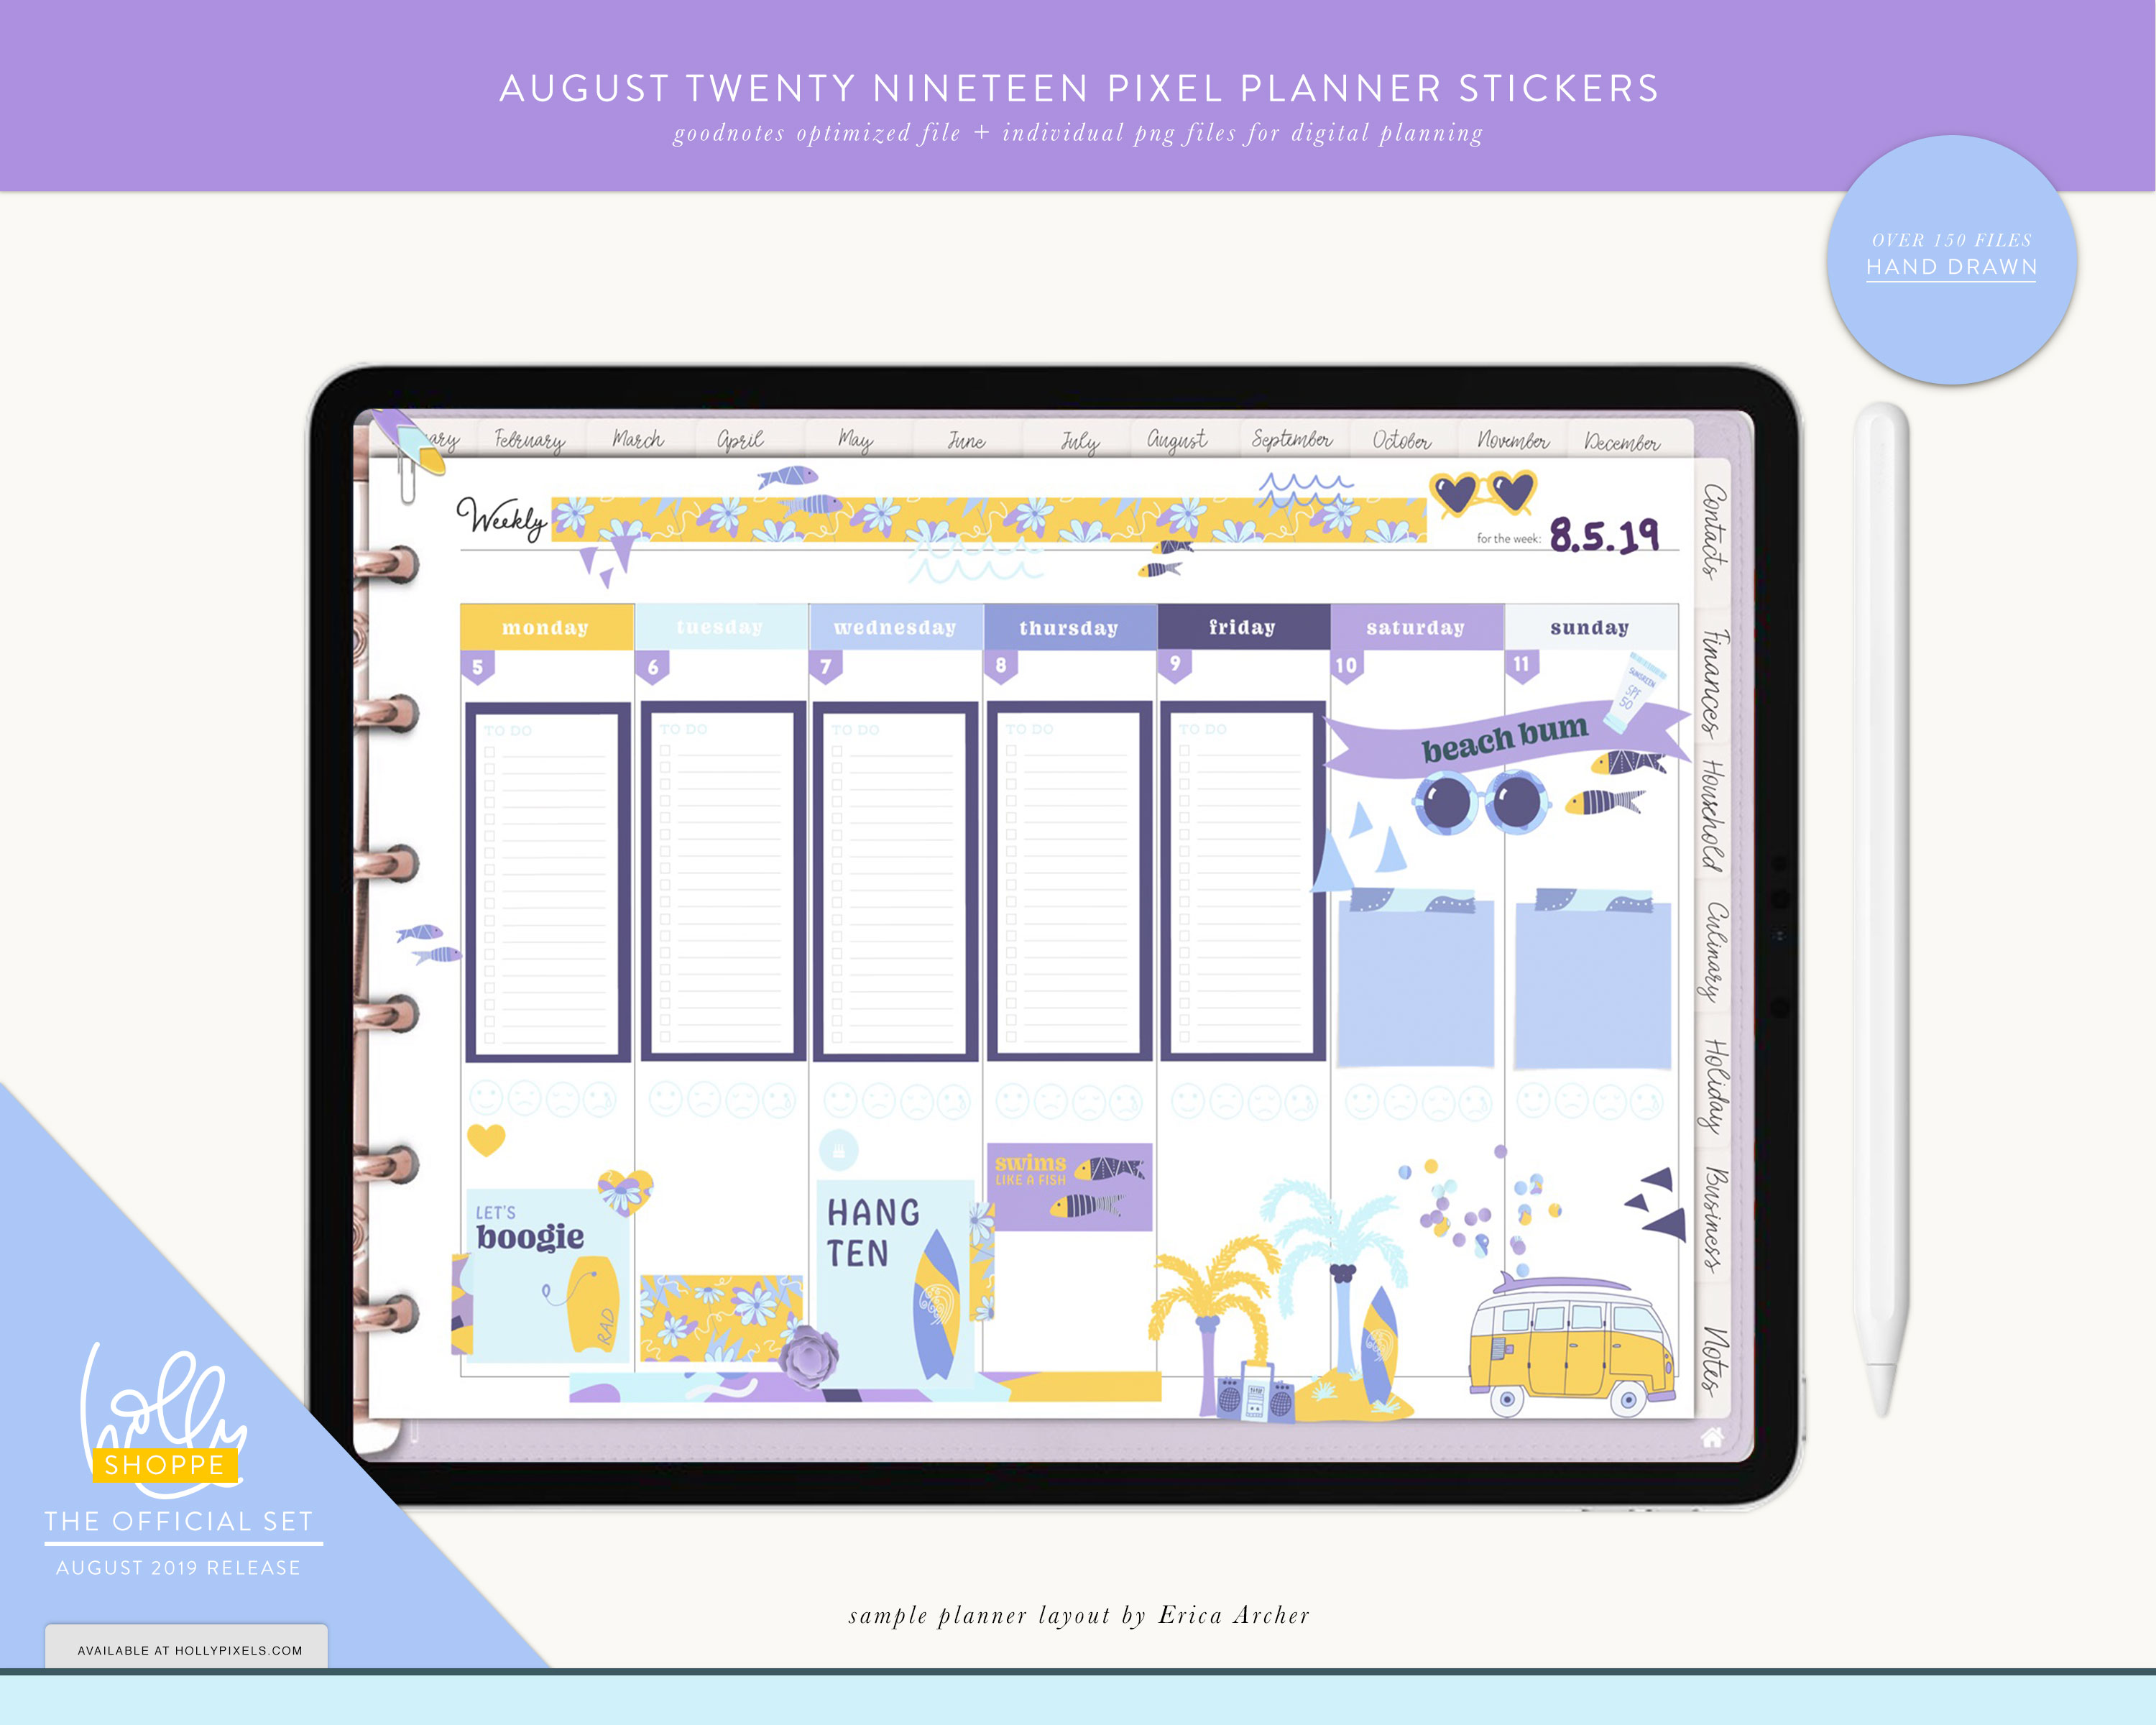 Plan Cute in August with Your Digital Planner 9